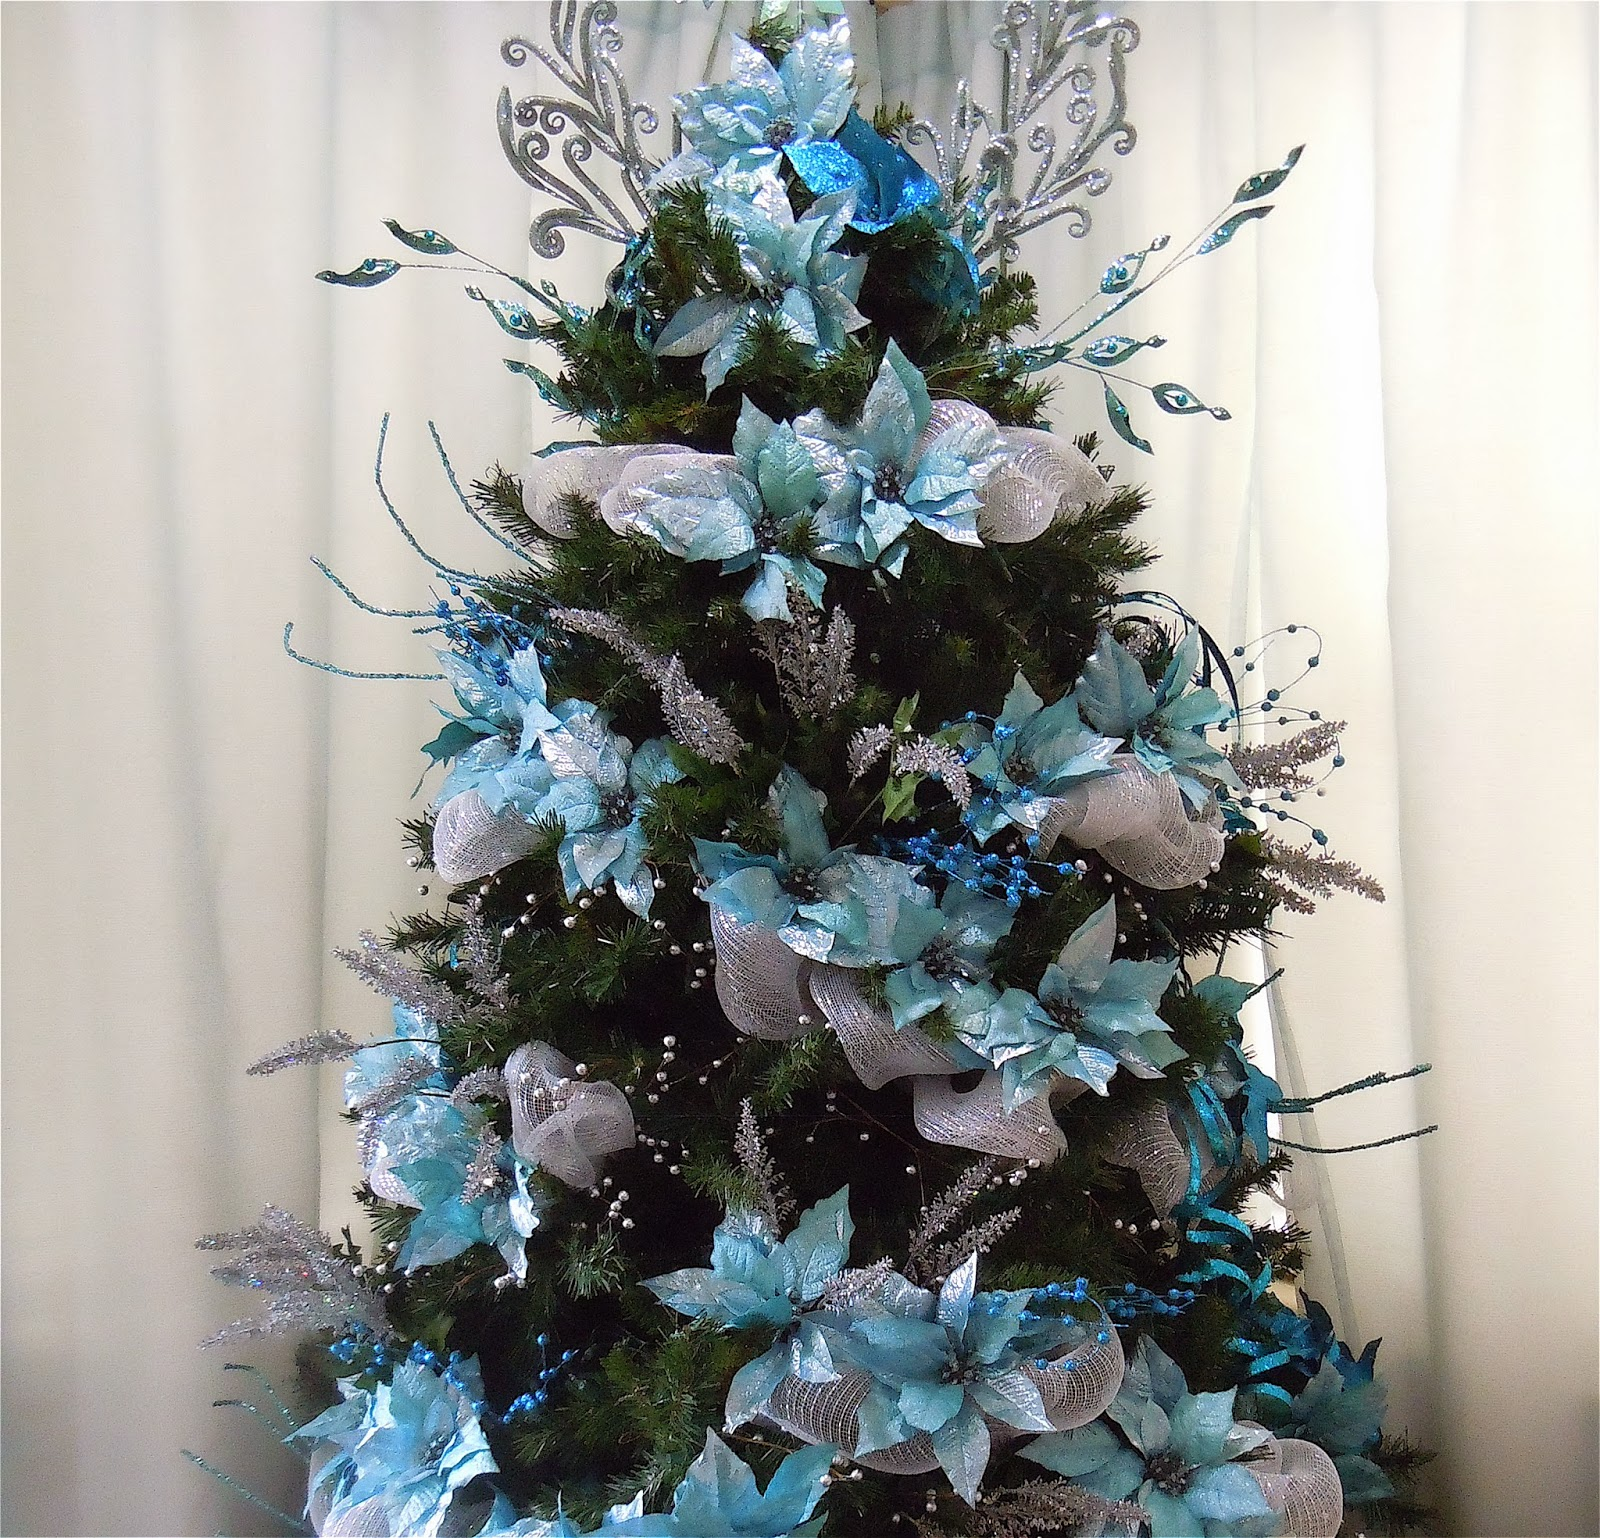 Seasontry teal christmas tree - Arbol de navidad plateado ...